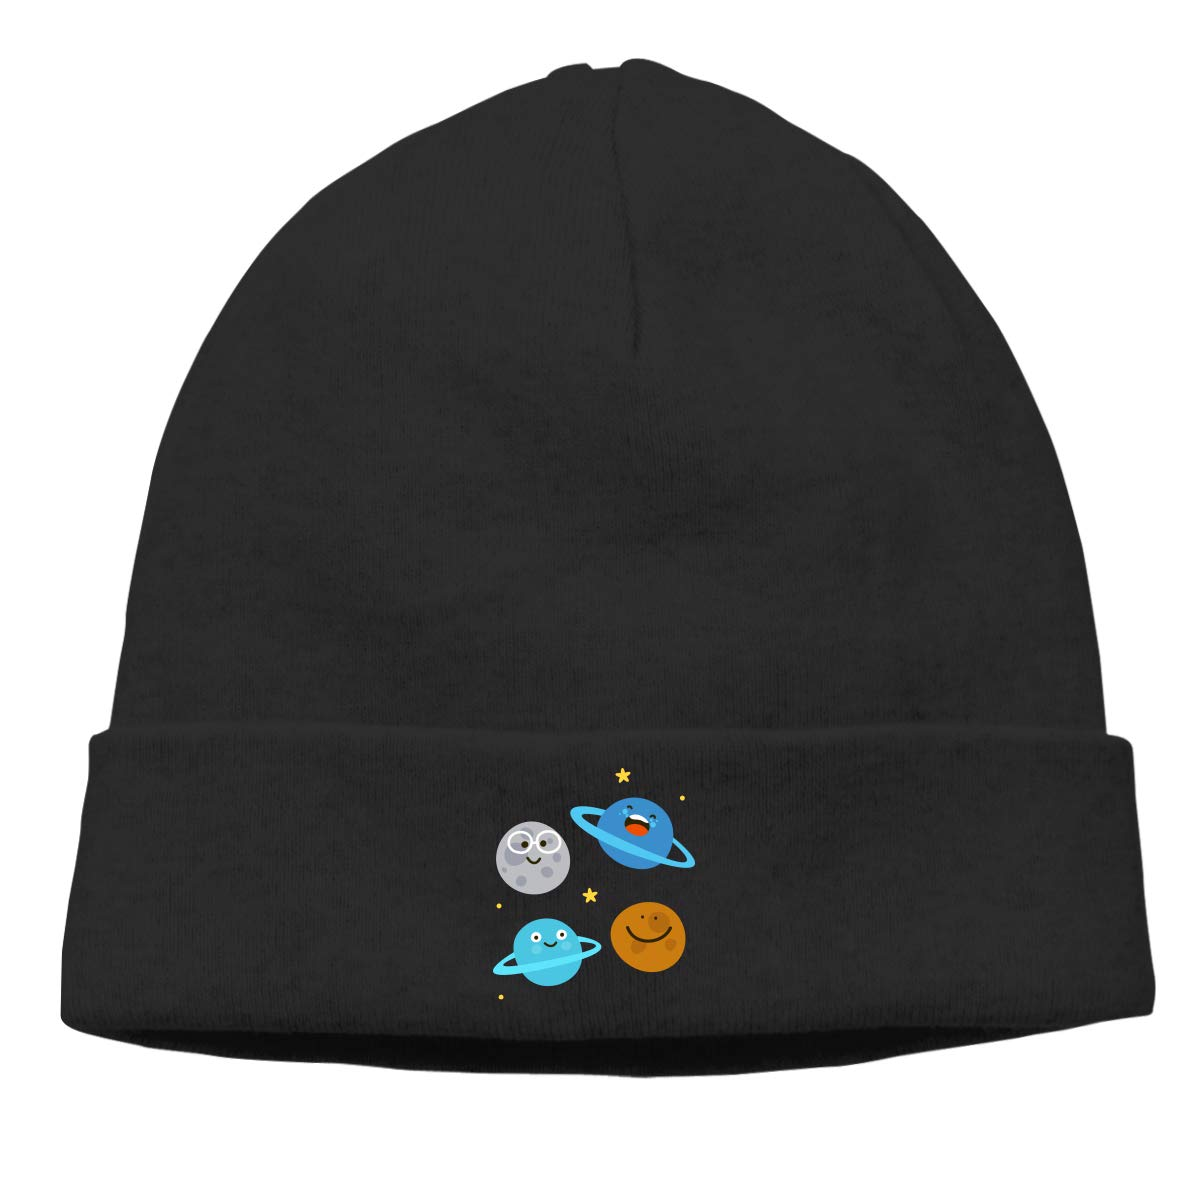 Stretchy /& Soft Winter Cap Solar System Planet Cartoon Women Men Solid Color Beanie Hat Thin